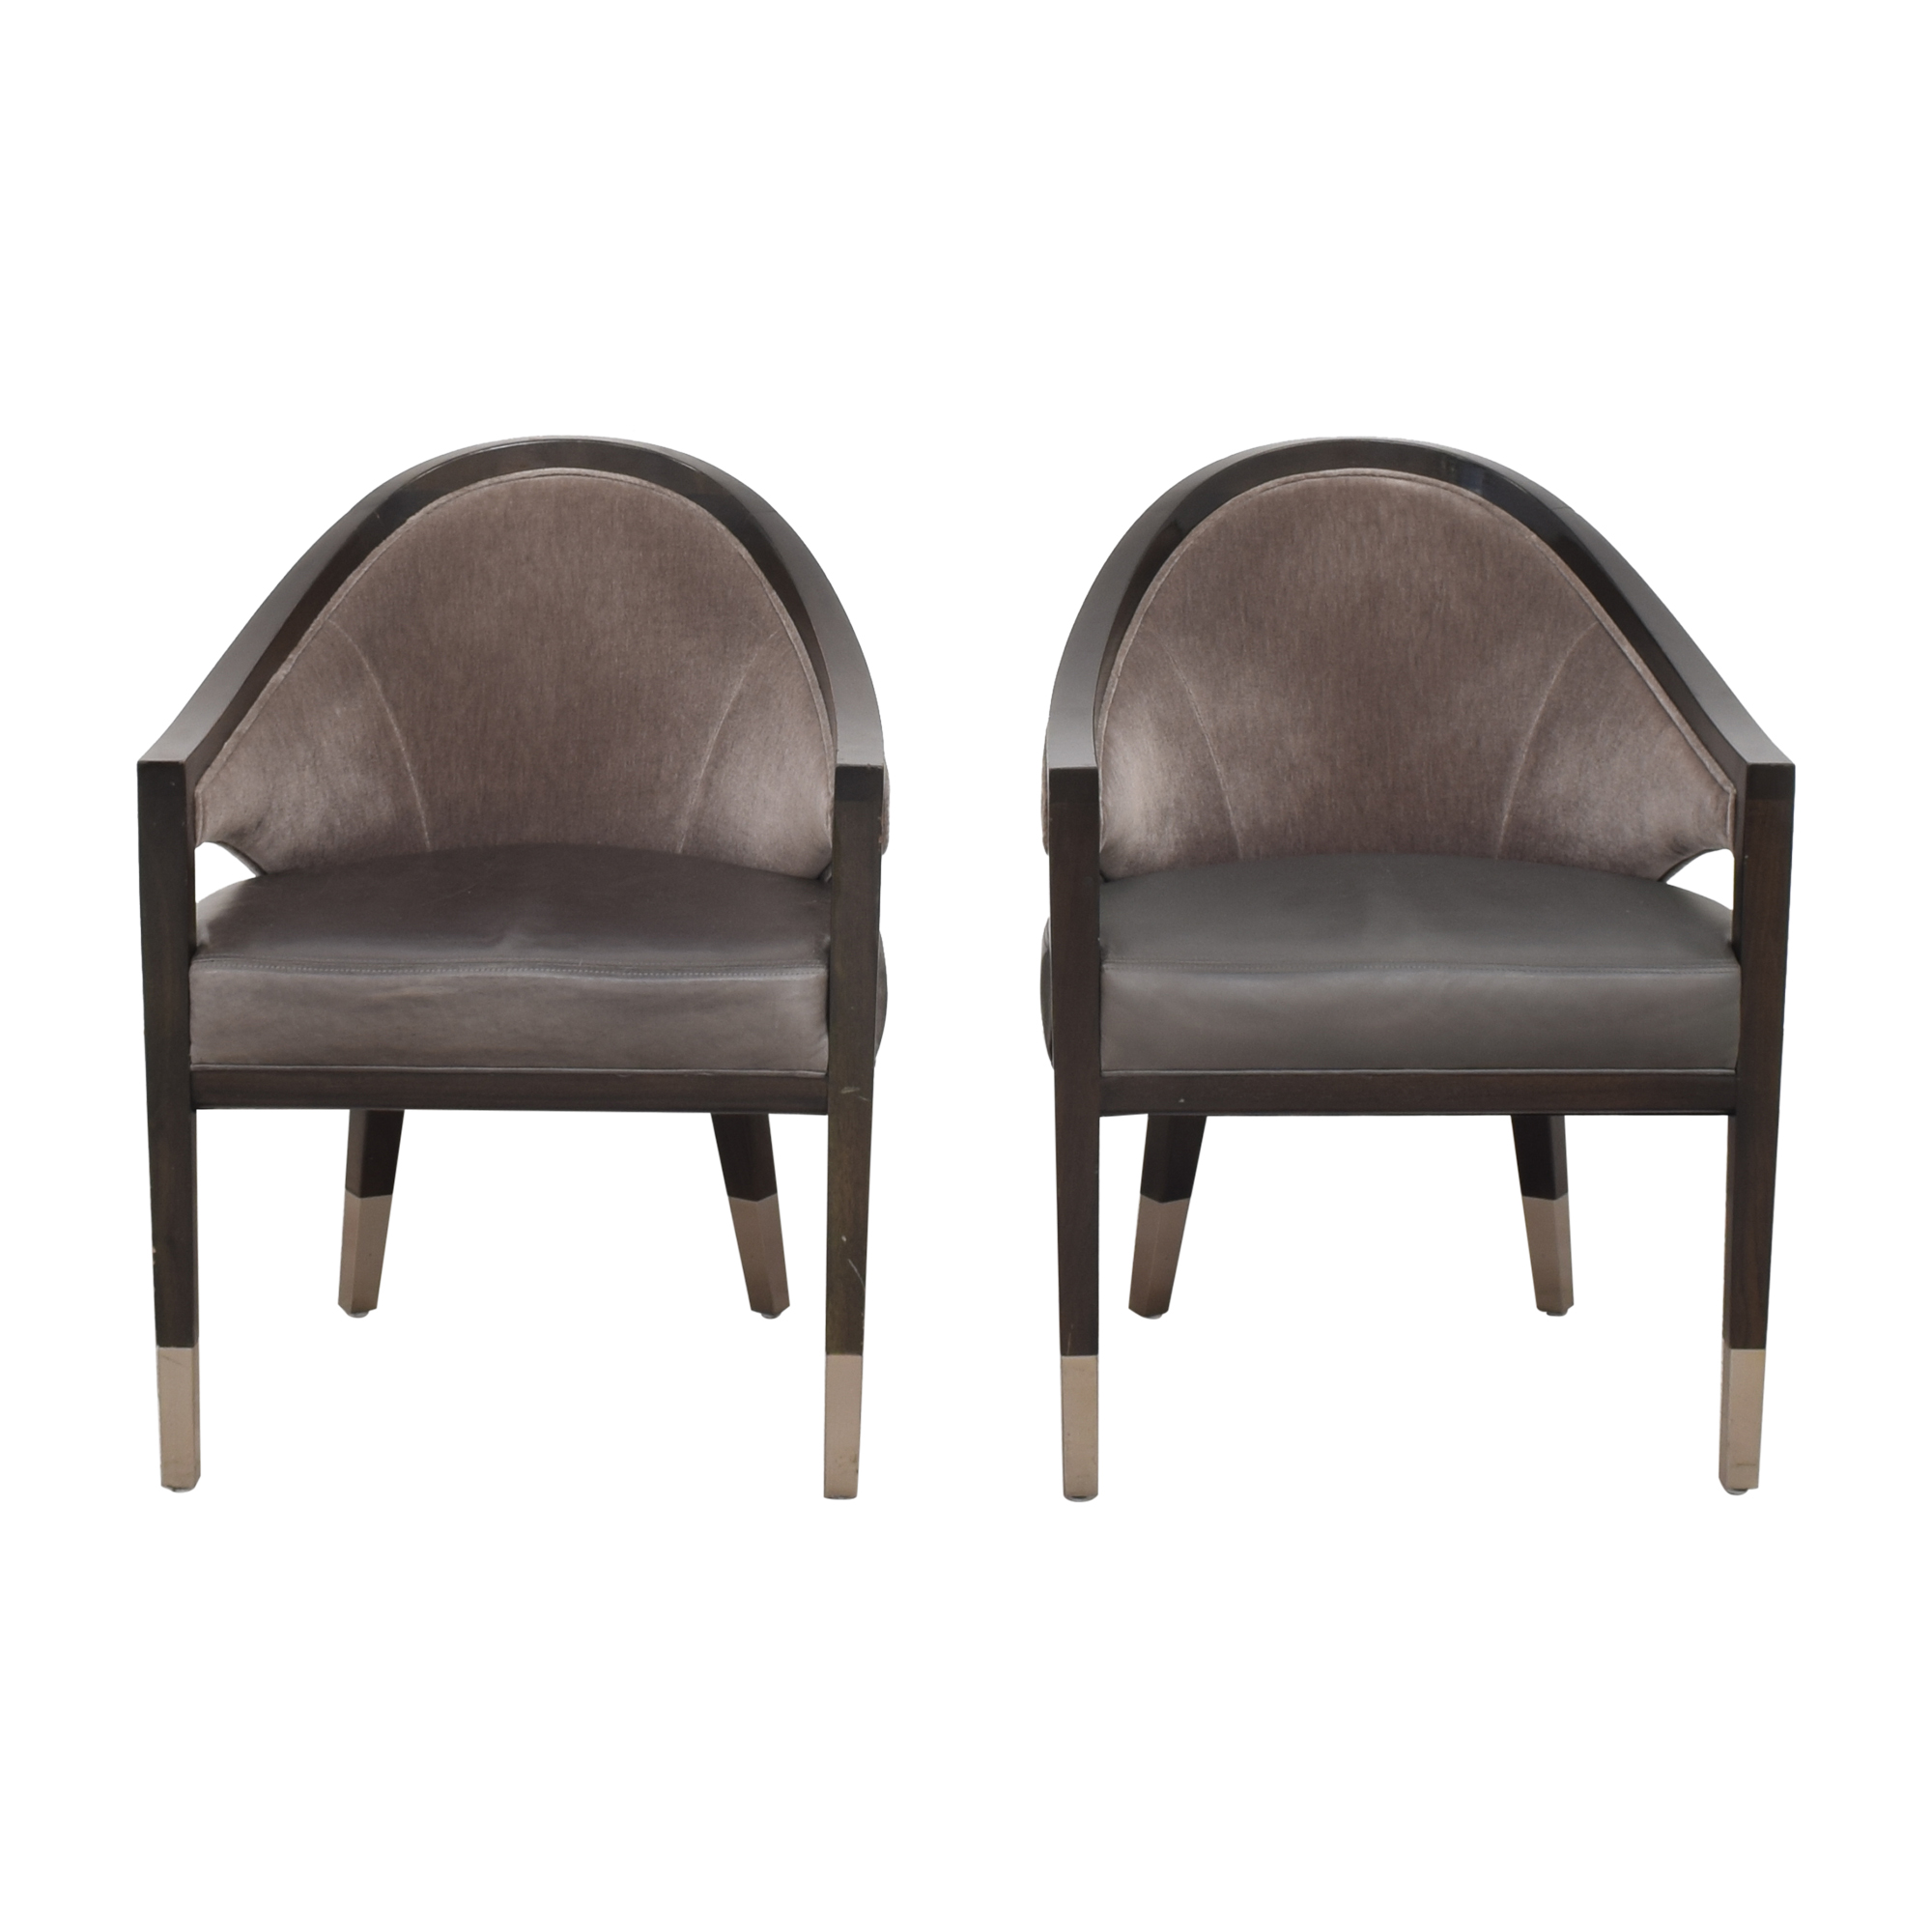 Allied Form Works Allied Works Eleven Madison Park Dining Room Chairs nyc